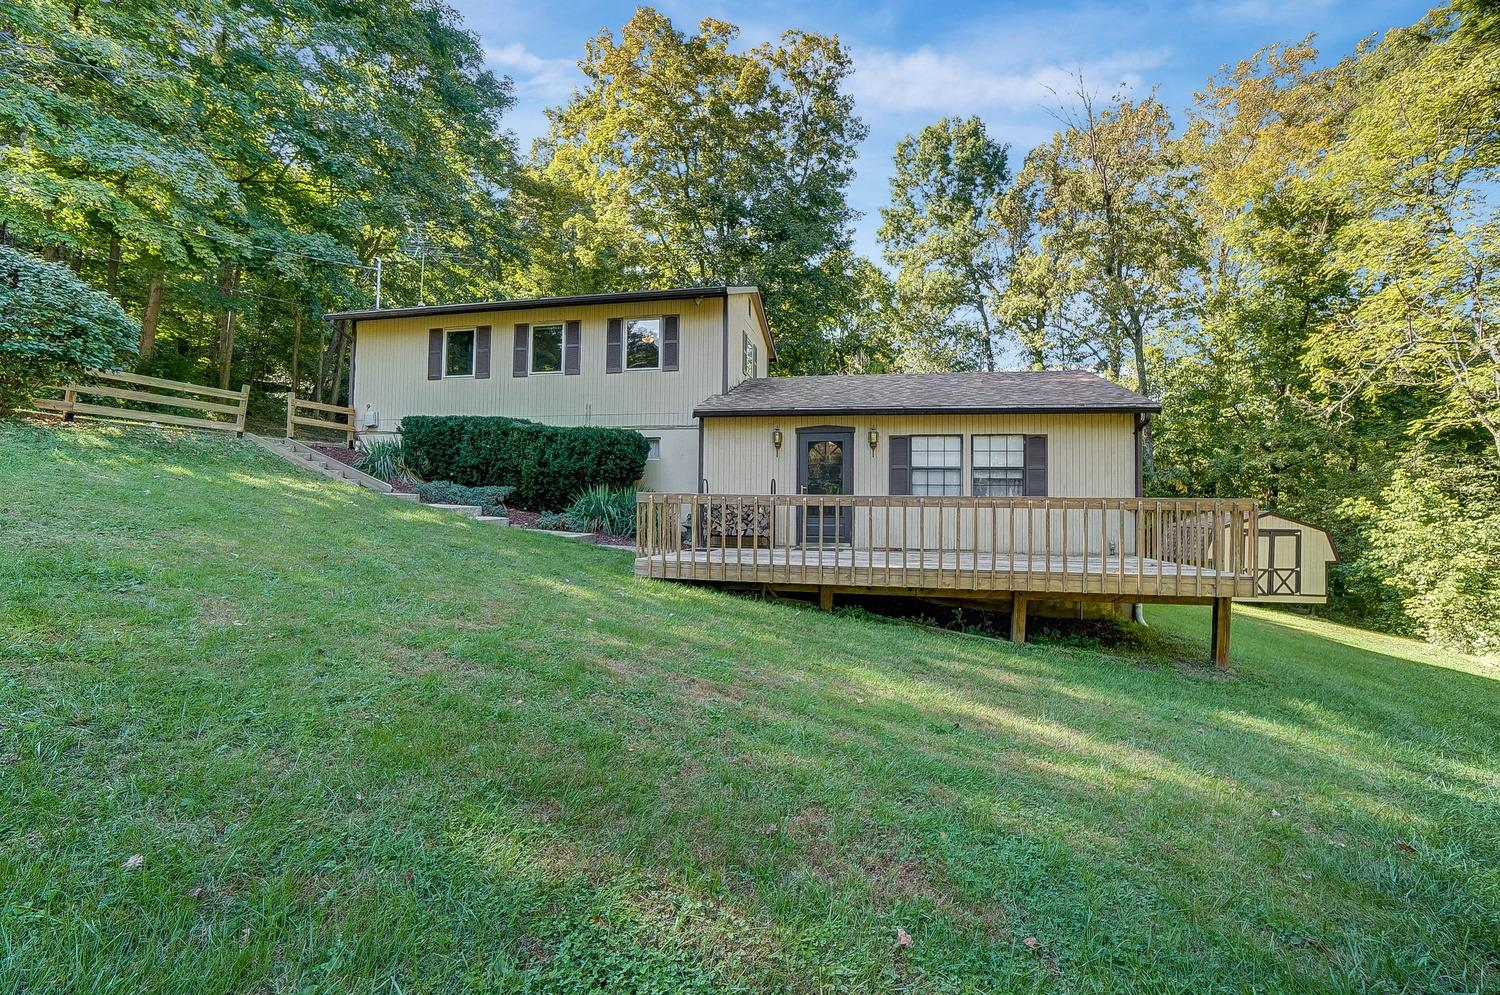 11015 Sand Run Road, Whitewater Twp, Ohio 45030, 3 Bedrooms Bedrooms, 6 Rooms Rooms,2 BathroomsBathrooms,Single Family Residence,For Sale,Sand Run,1717246